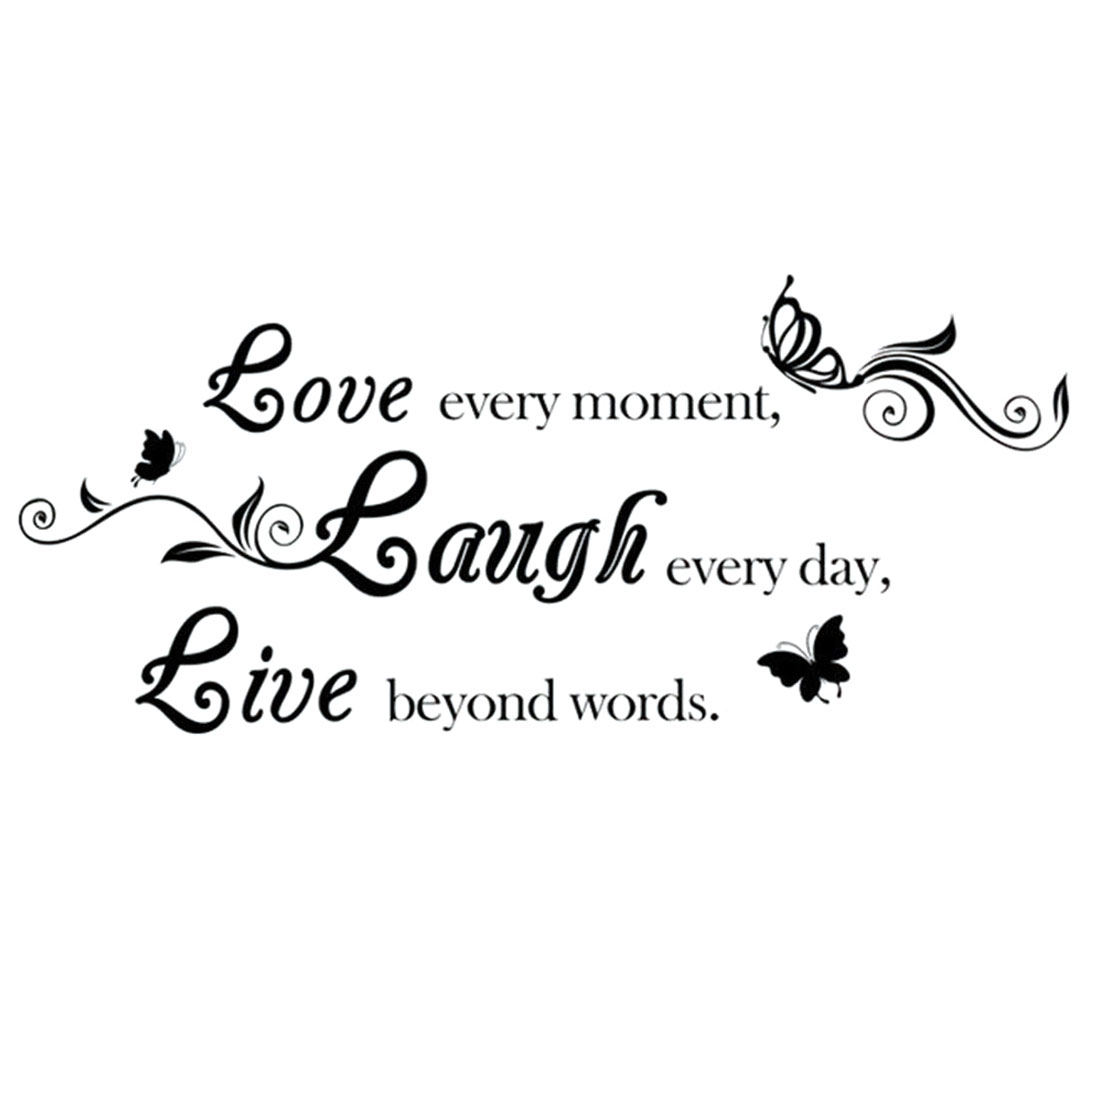 Home Laugh Live Letter Word Quote Removable DIY Wall Art Sticker Decal 60 x 26cm